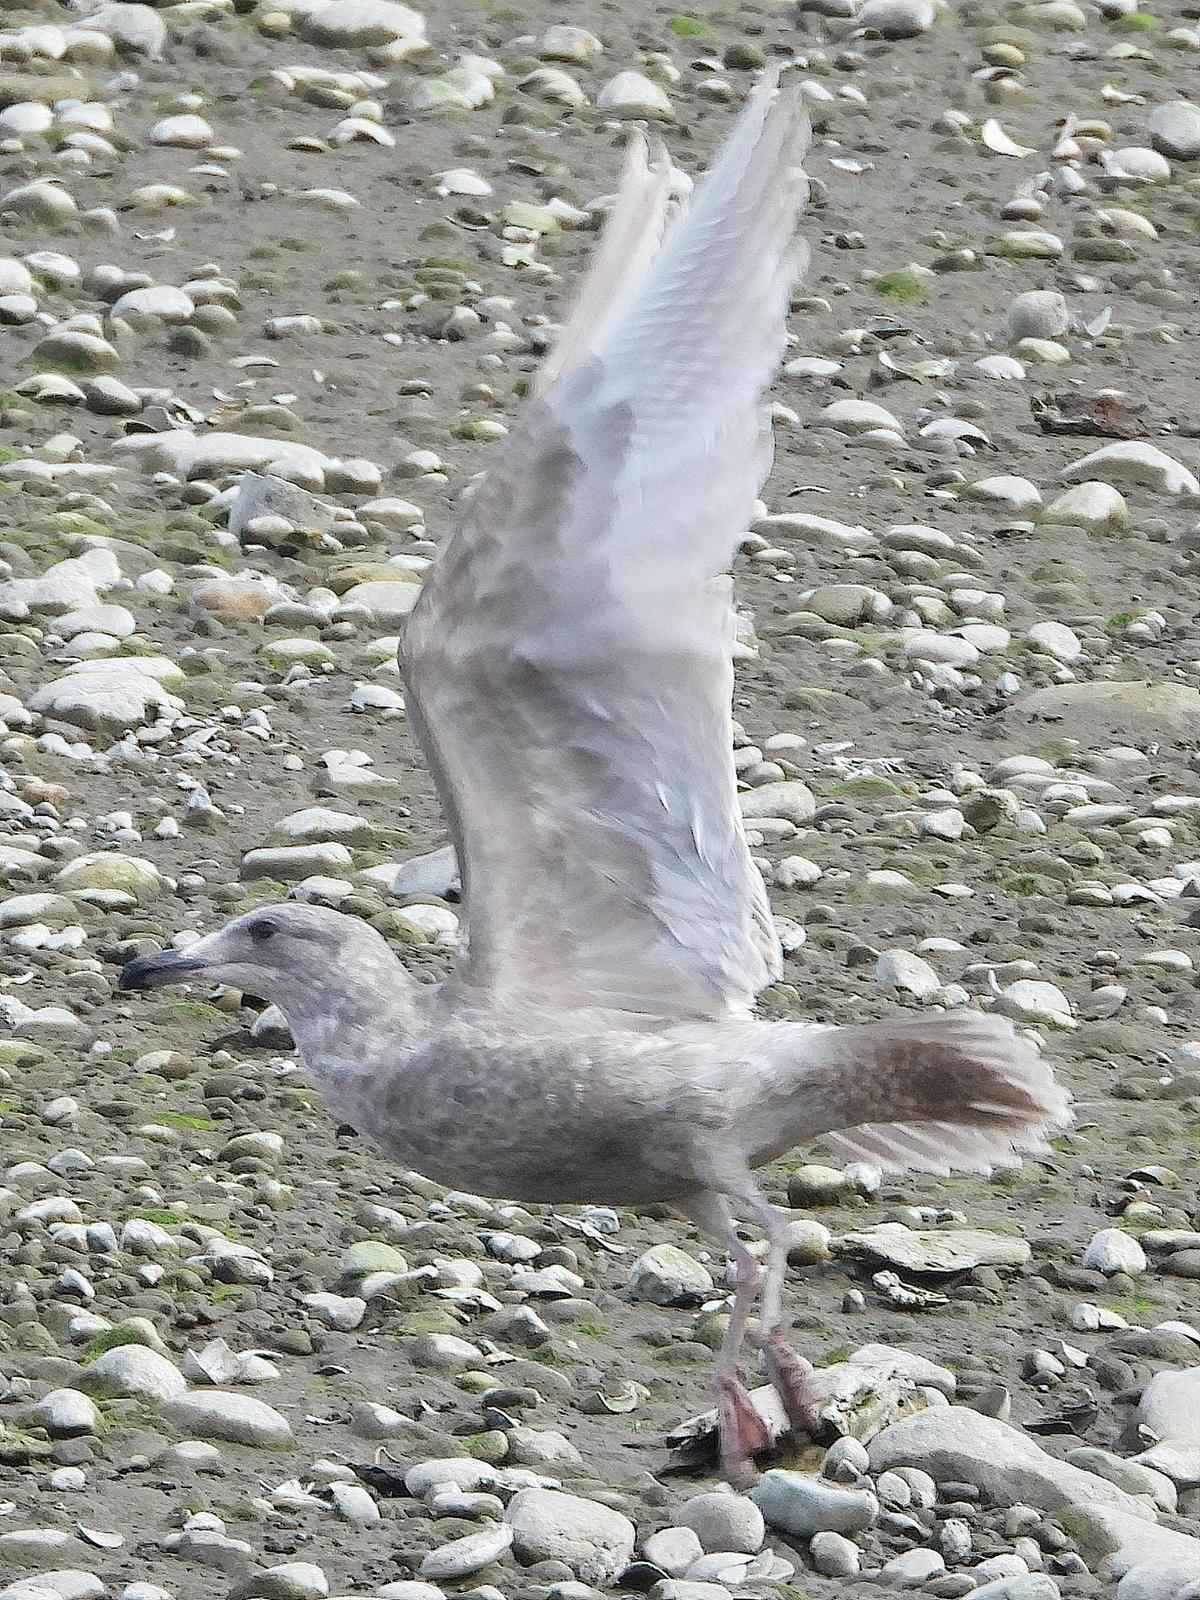 Glaucous-winged Gull Photo by Dan Tallman